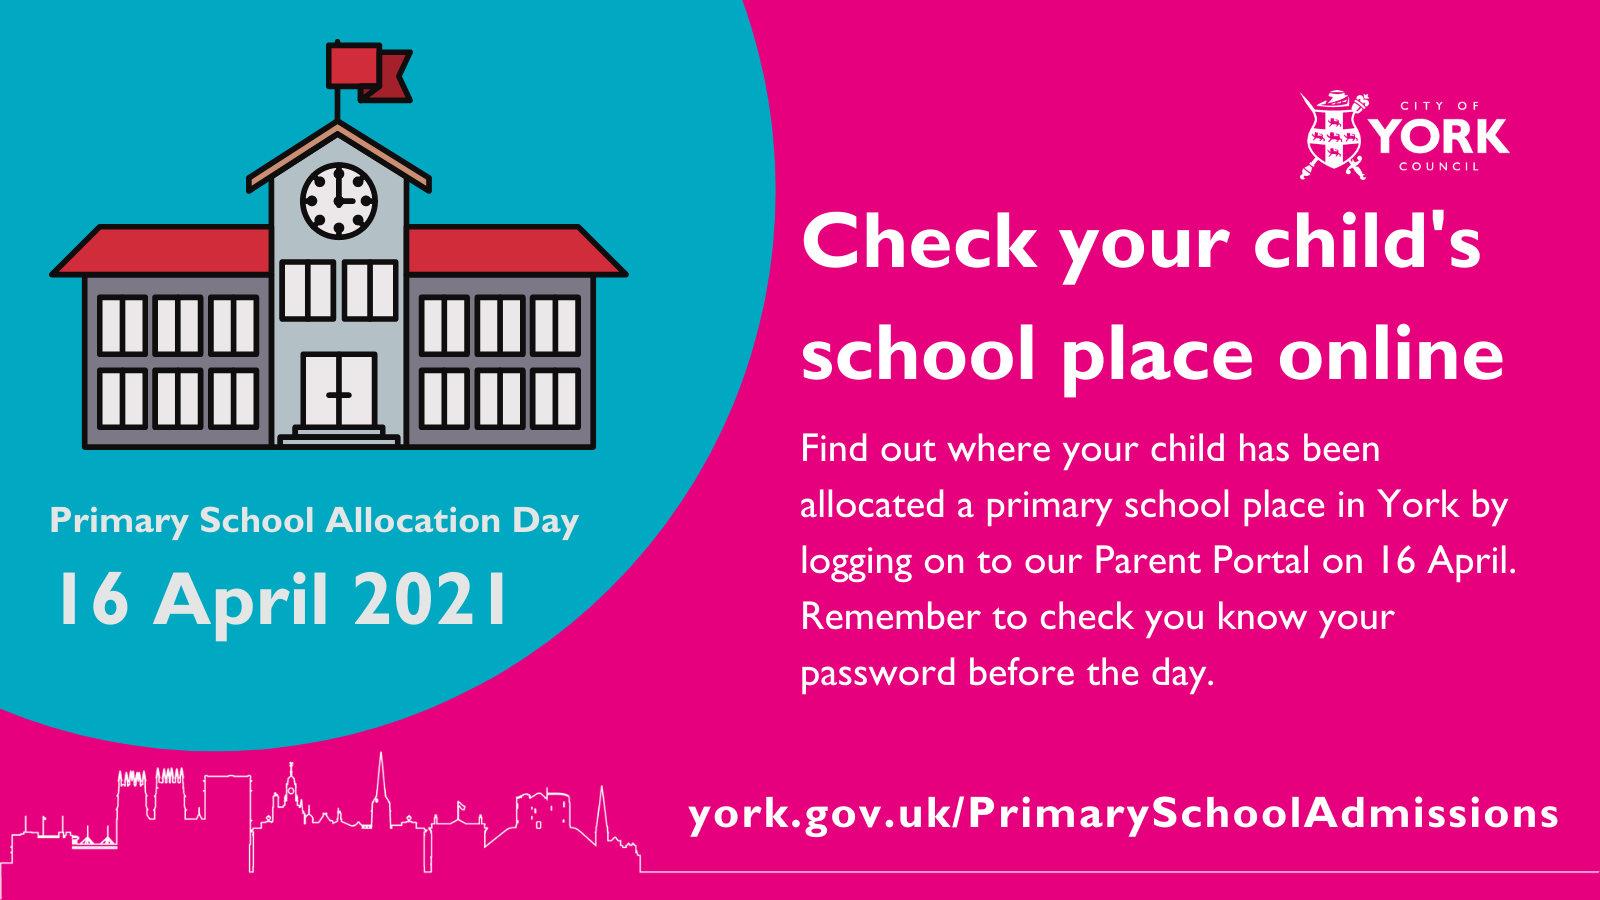 Text reads: Primary School Allocation Day, 16 April 2021. Check your child's school place online. Find out where your child has been allocated a primary school place by logging on to our Parent Portal on 16 April. Remember to check you know your password before the day.